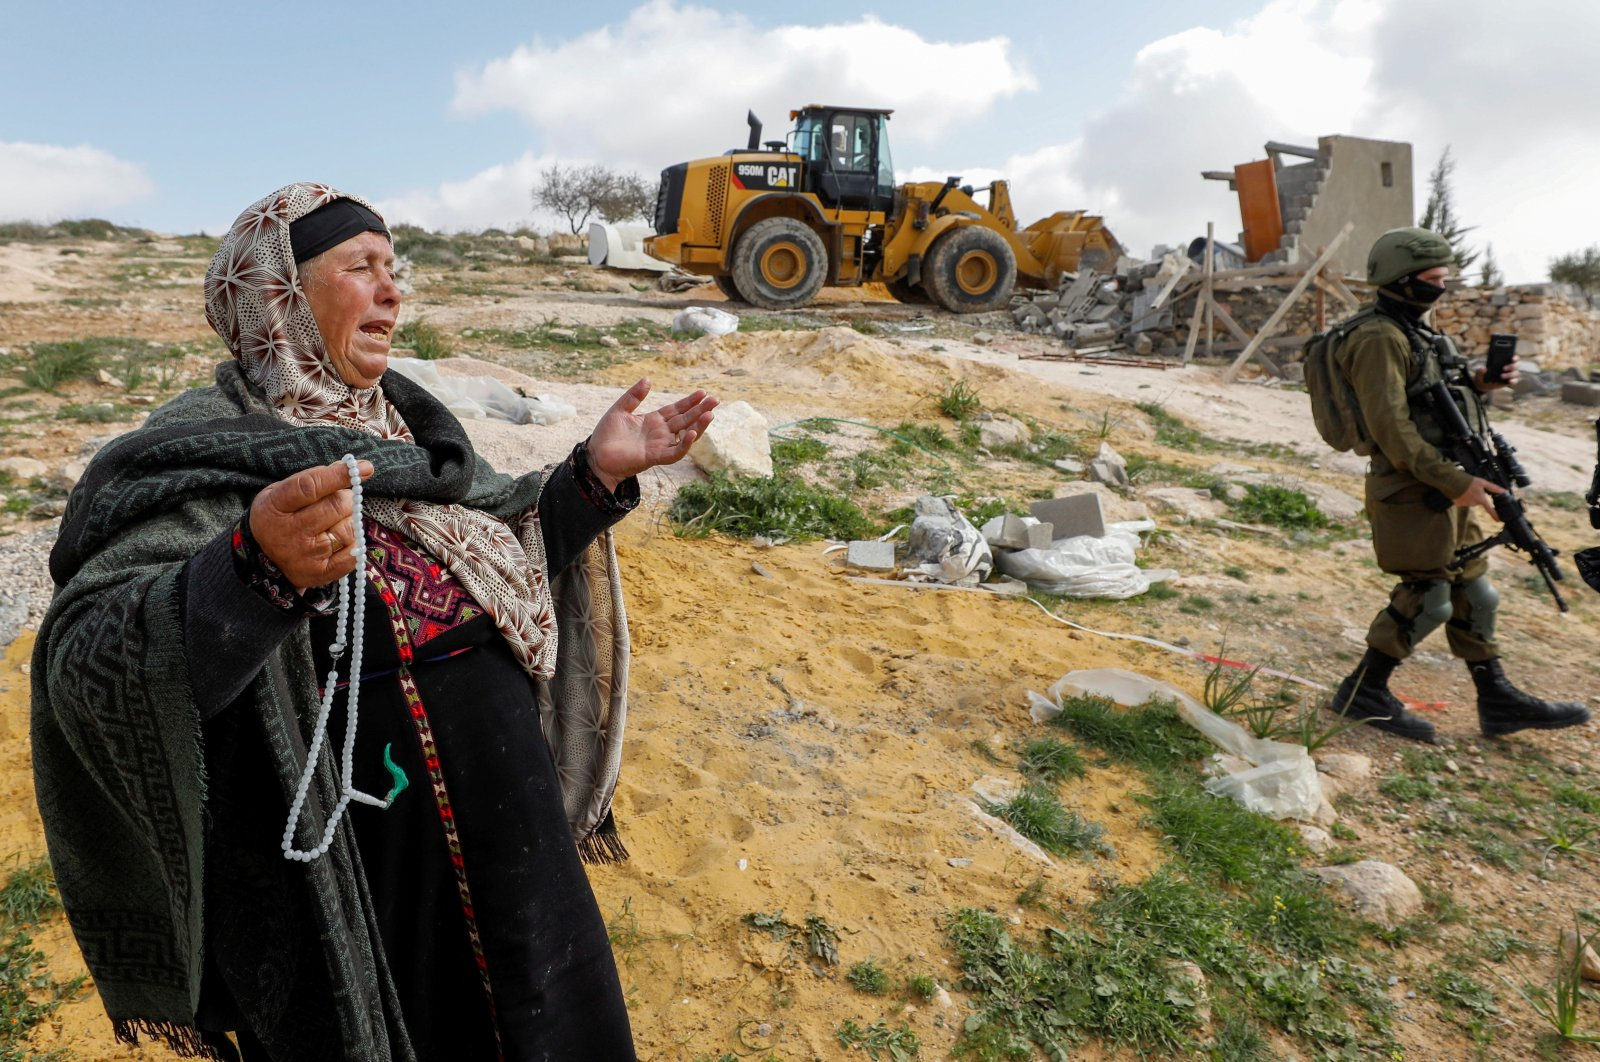 A Palestinian woman reacts as Israeli forces demolish her house near Hebron in the Israeli-occupied West Bank, March 2, 2021. (Reuters Photo)